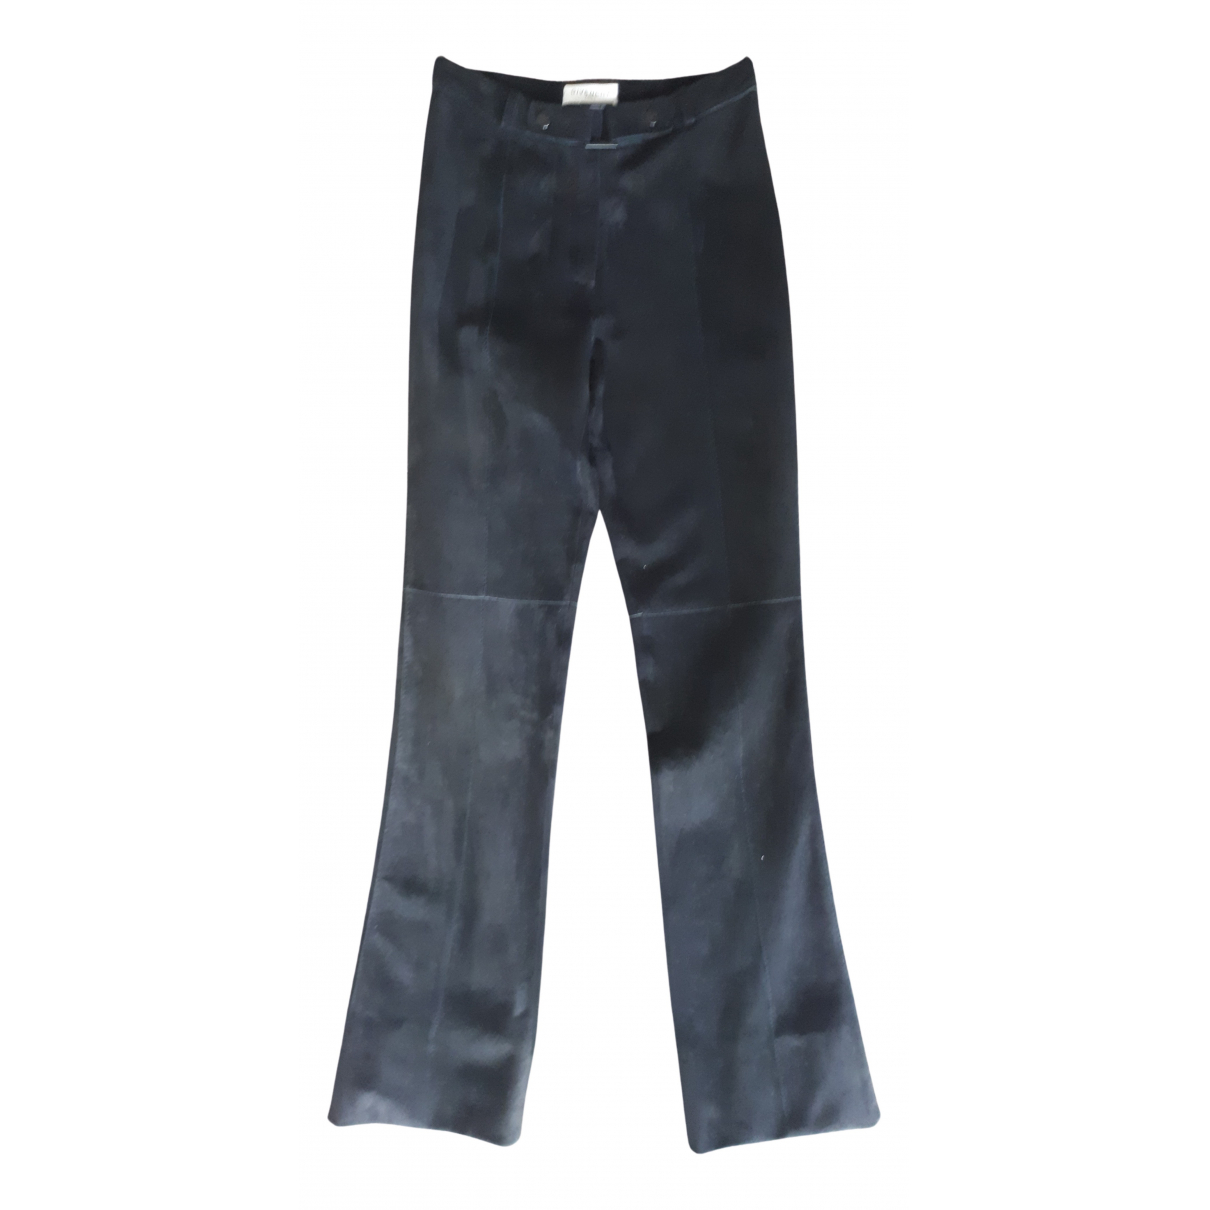 Givenchy N Black Leather Trousers for Women 36 FR